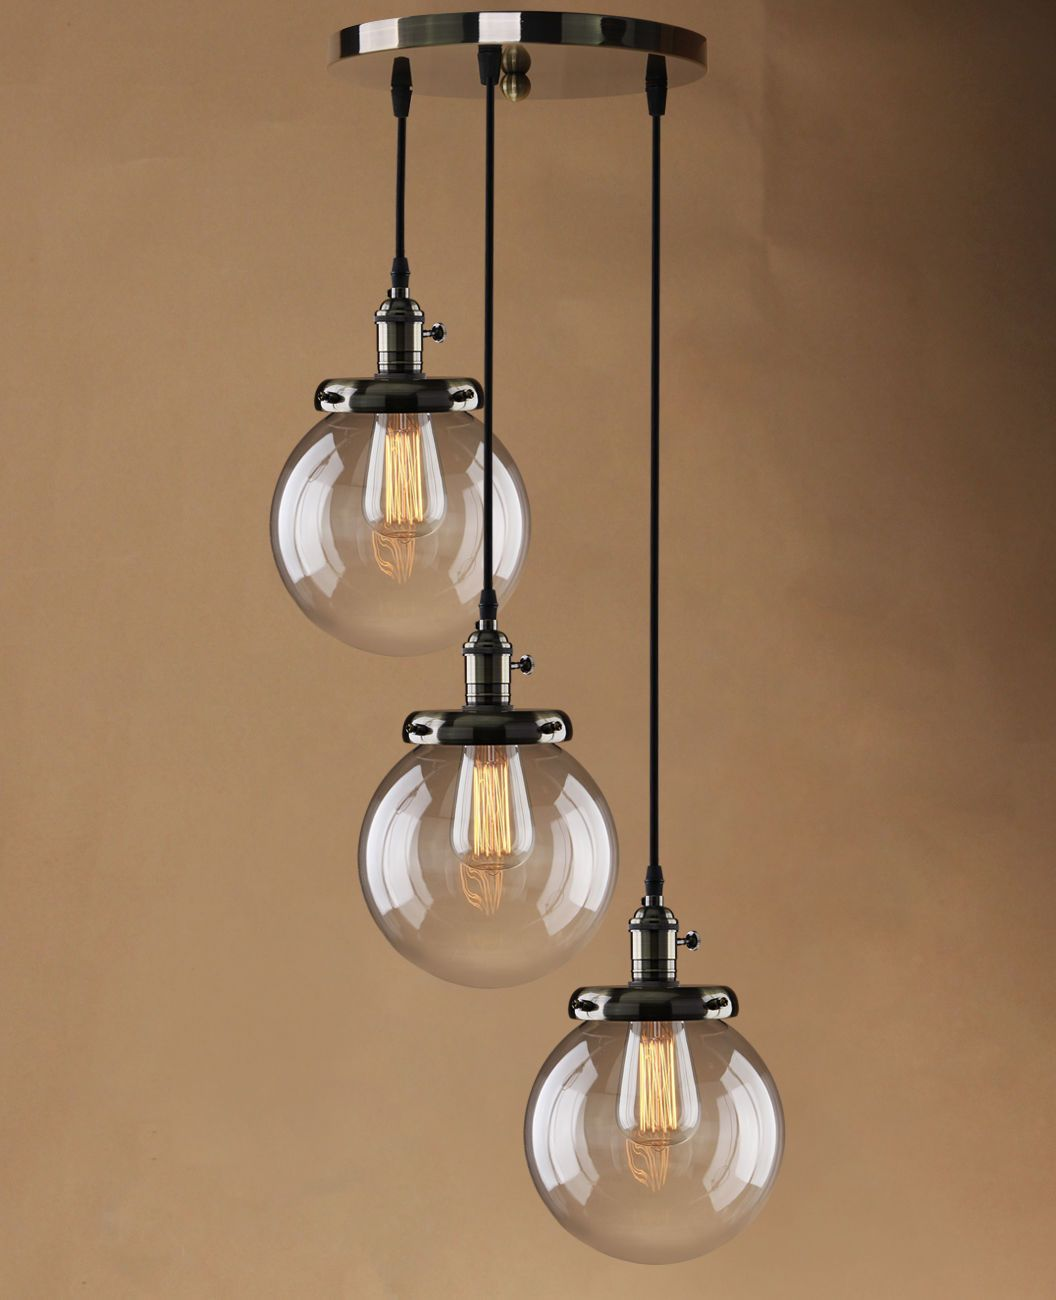 Retro Vintage Cluster Hanging Ceiling Lights Globe 3 Glass Shades Pendant Lamp